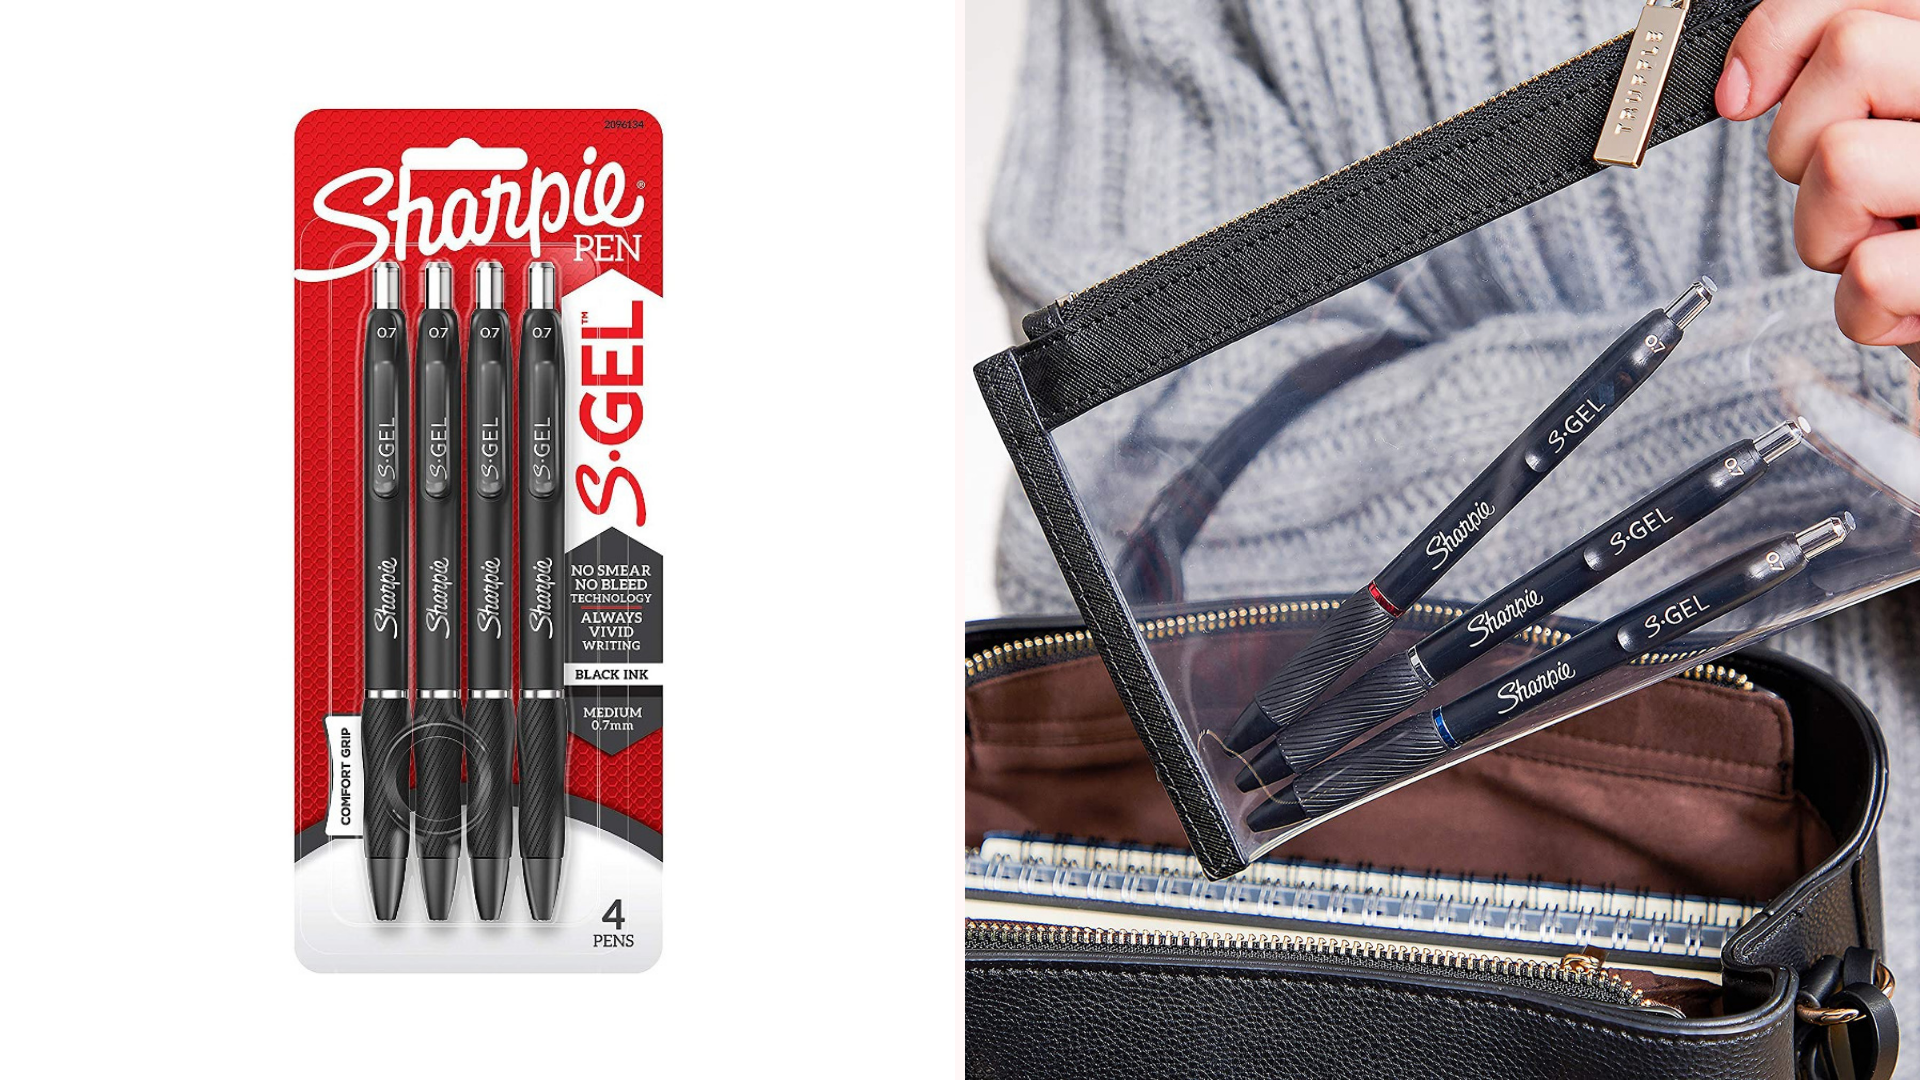 Three sharpie pens are inside a clear pencil bag.